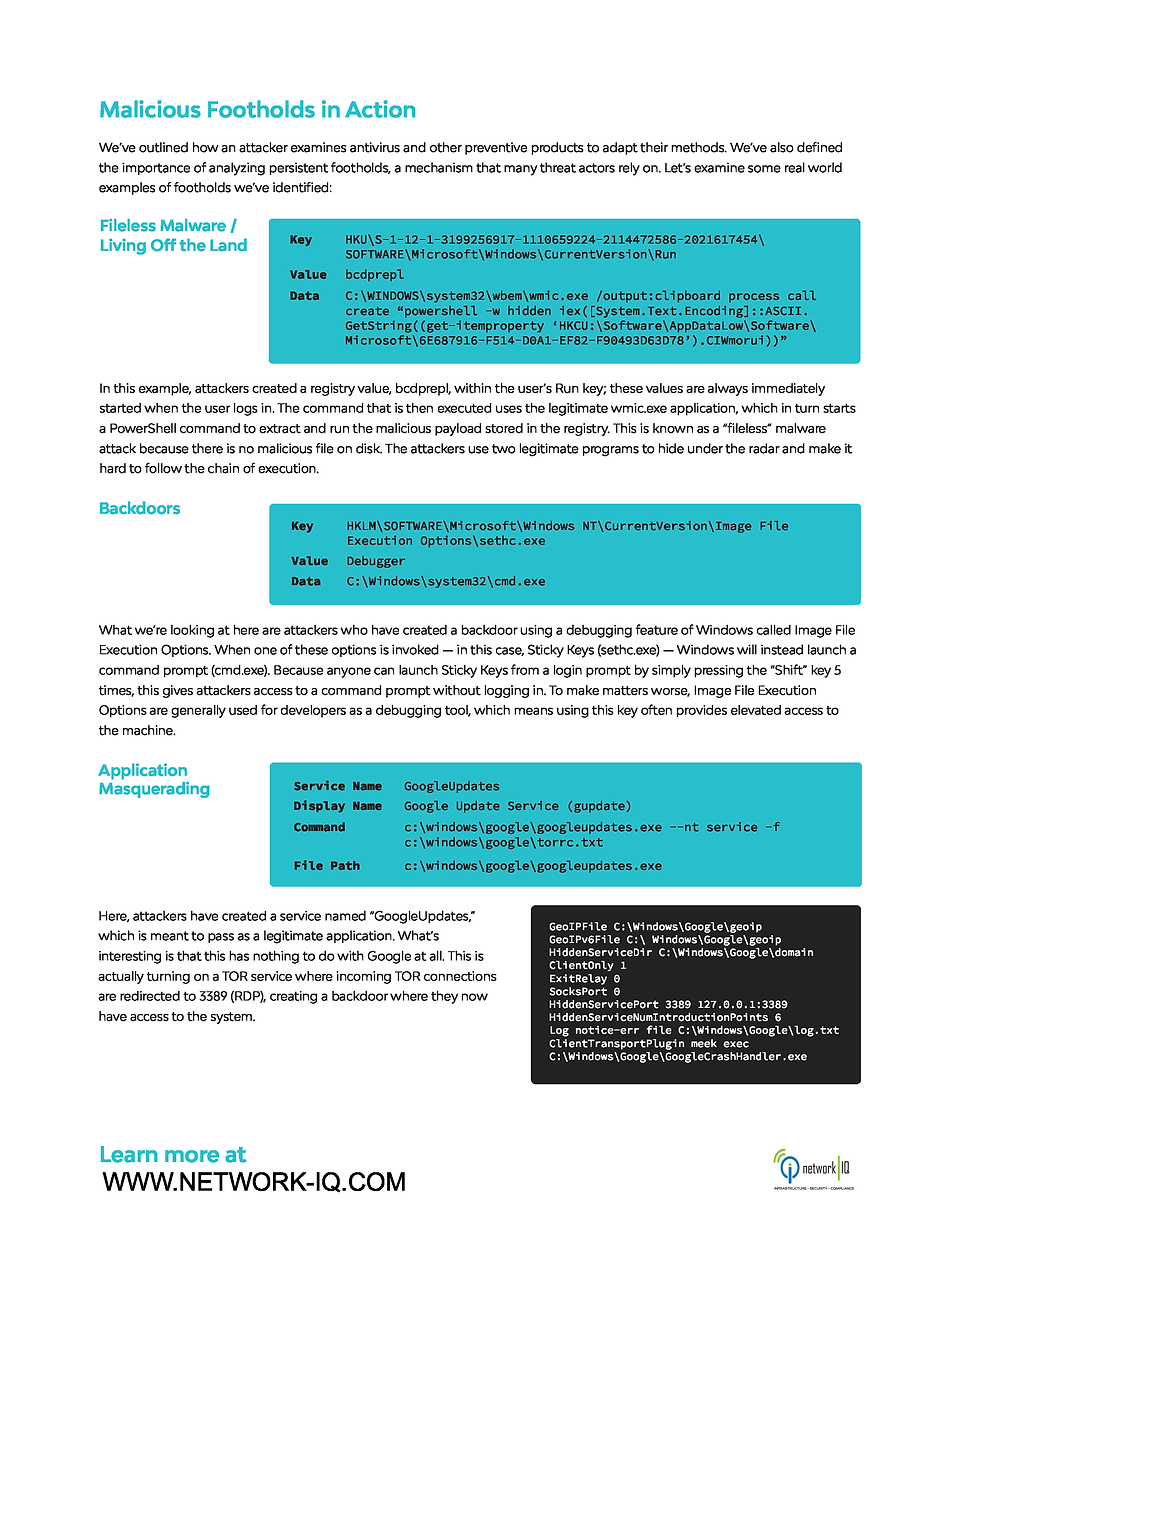 Datasheet - The Missing Piece in Your Se